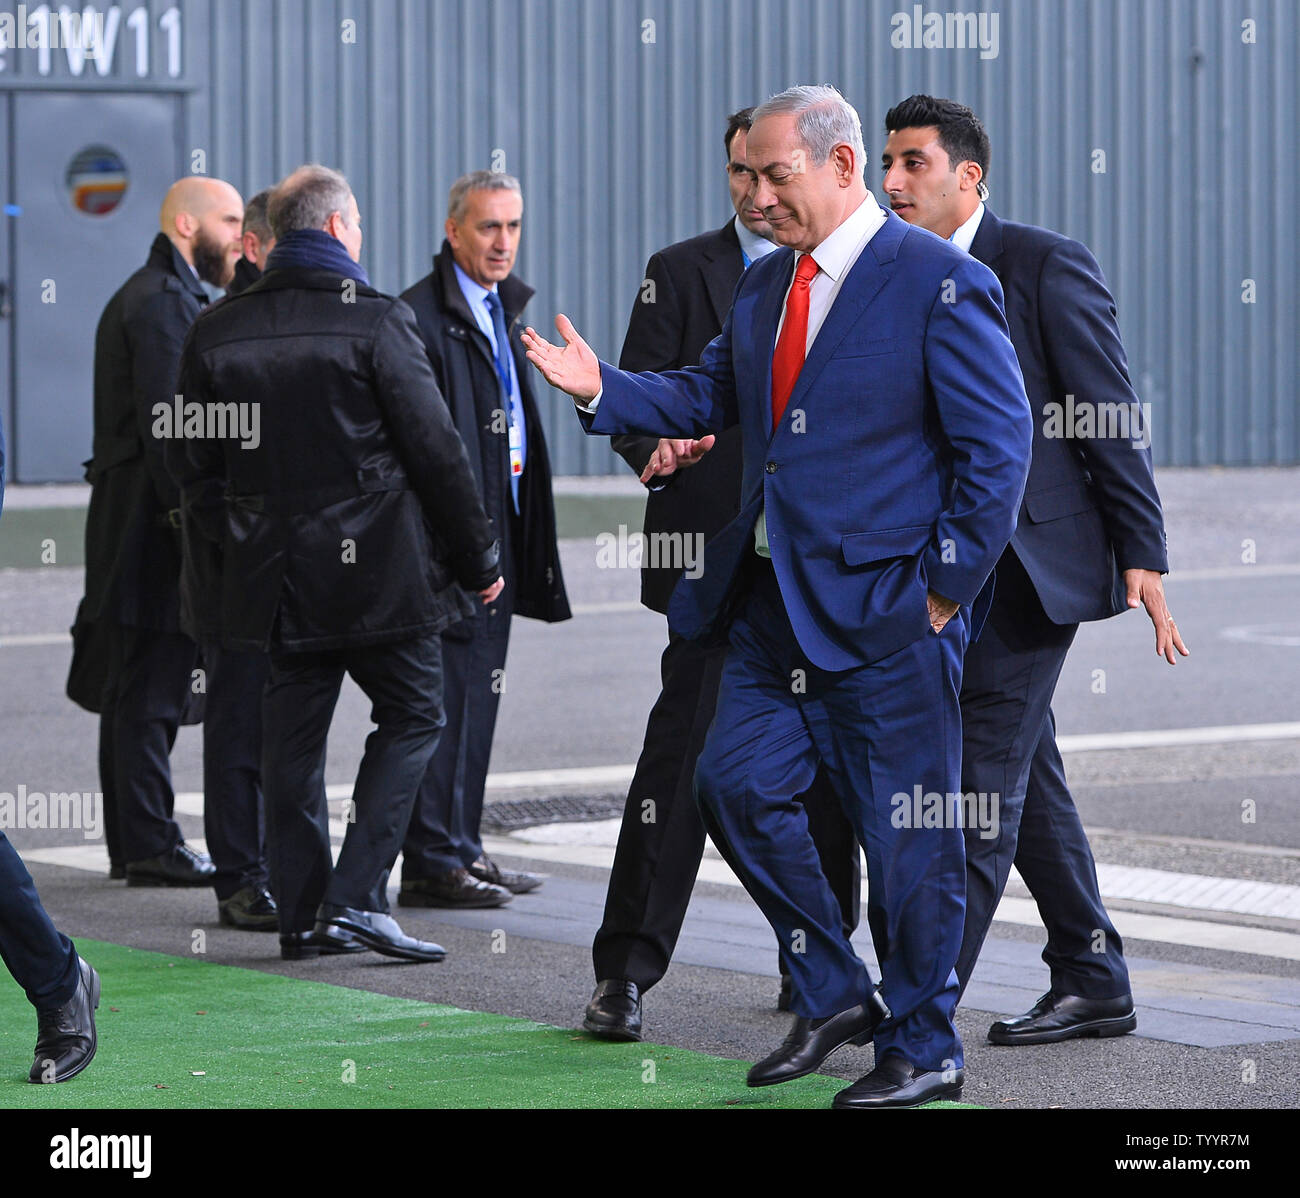 Israeli Prime Minister Benjamin Netanyahu arrives at the United Nation's 21st climate change conference at Le Bourget near Paris on November 30, 2015. The almost 150 heads of state and representatives from 200 countries in attendance will attempt to negotiate a legally binding agreement to limit worldwide carbon emissions with the goal of keeping global warming under 2 degrees Celsius.   Photo by David Silpa/UPI - Stock Image